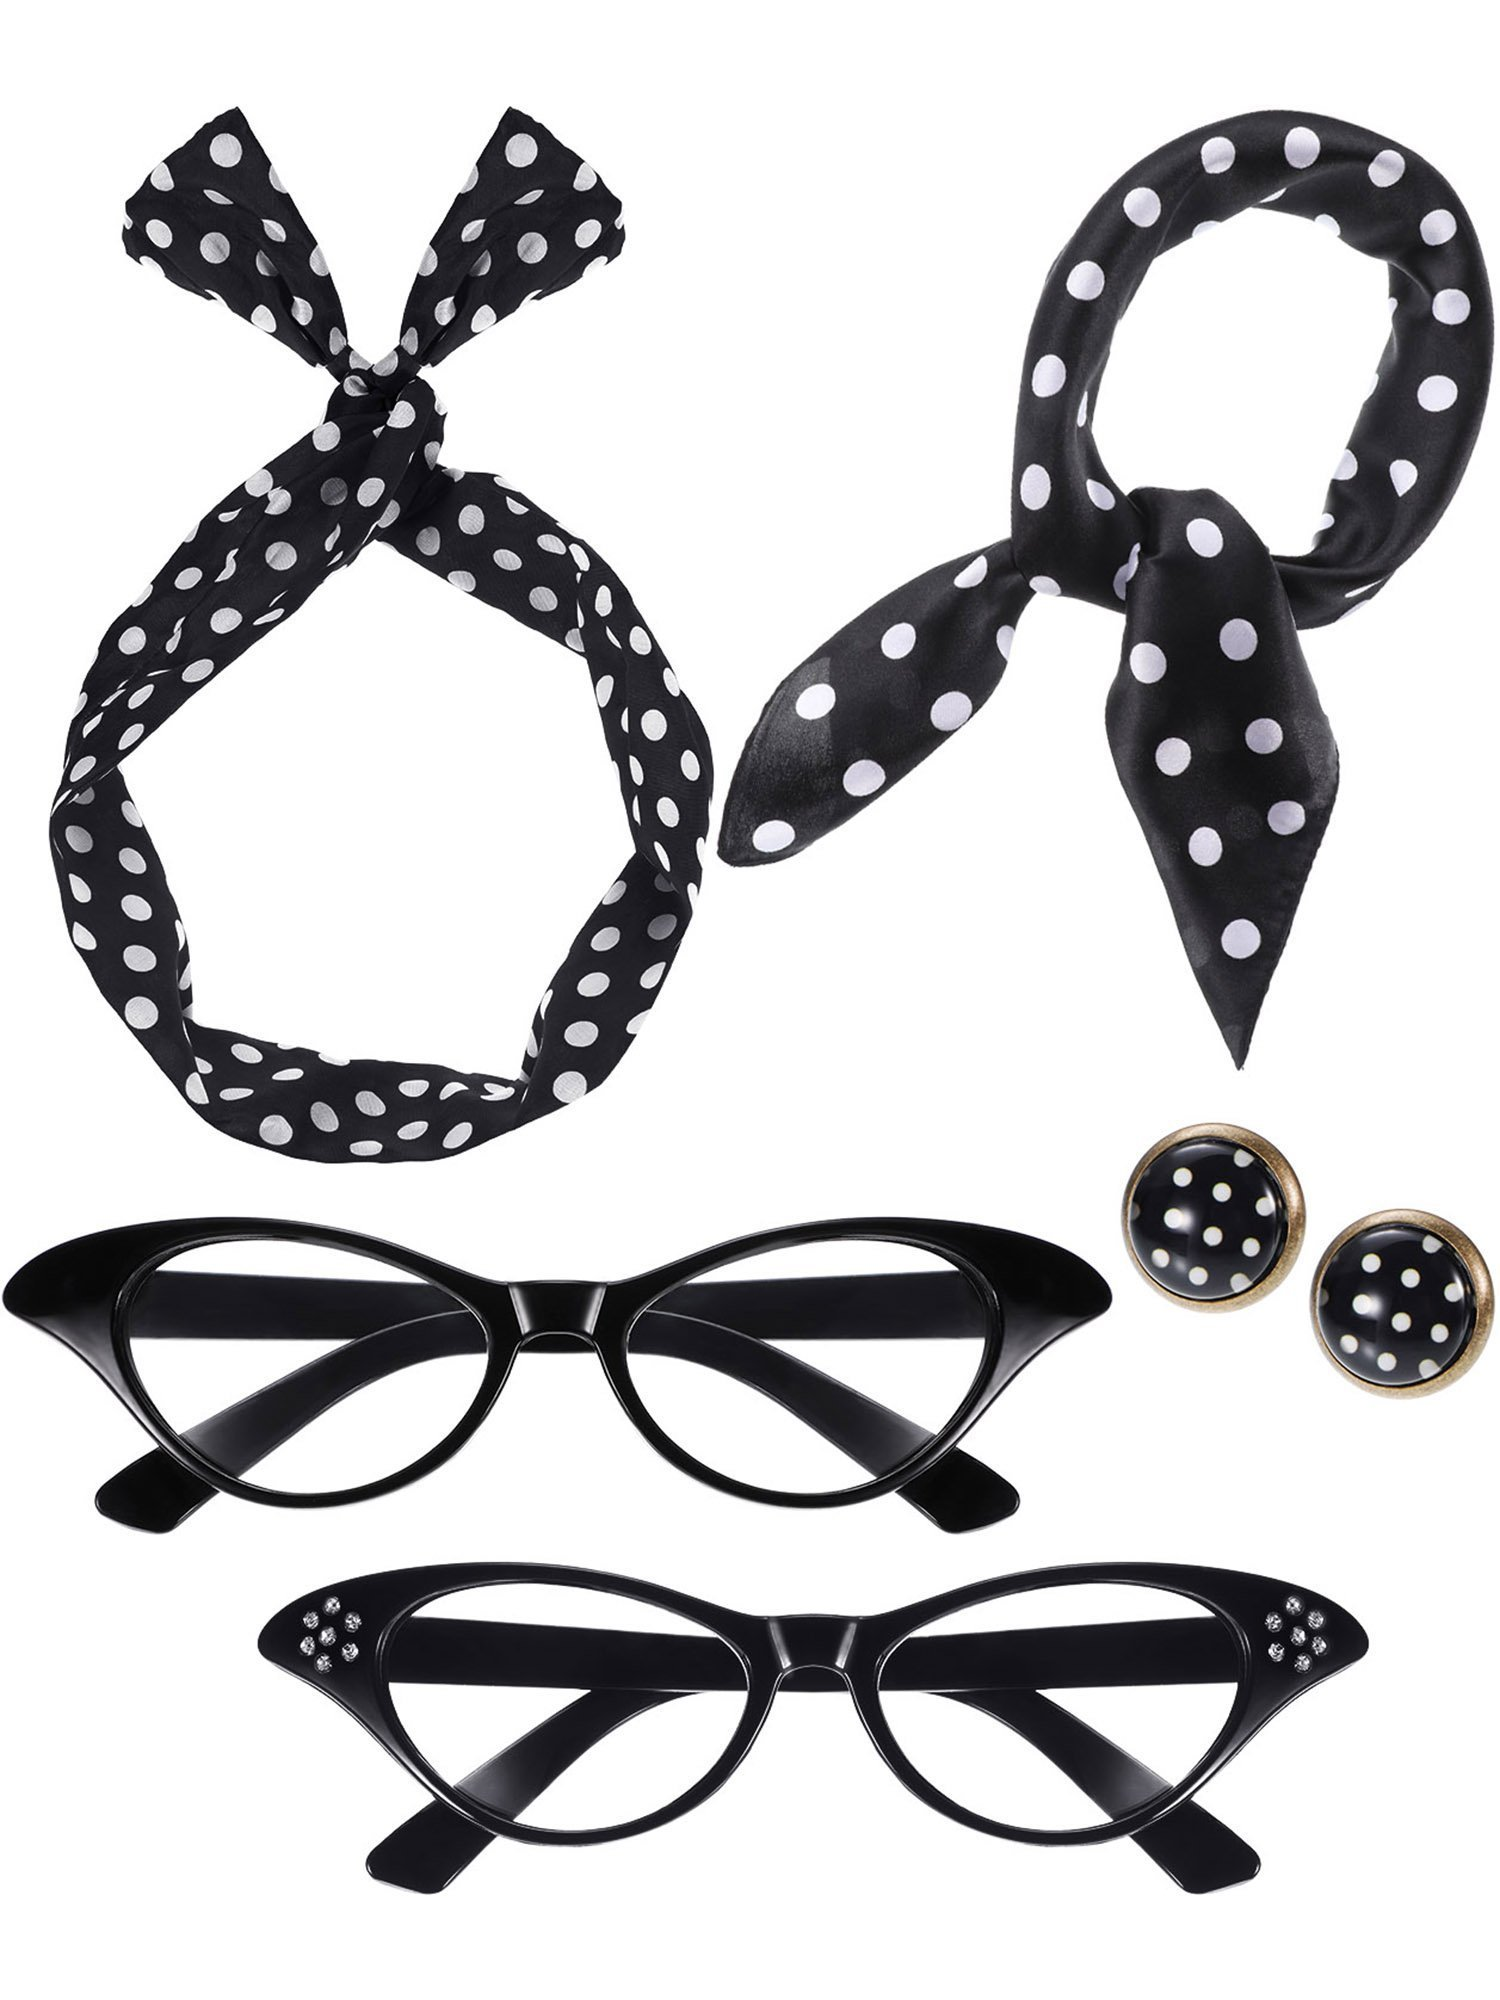 Blulu Women 50's Costume Accessories Set, Include 2 Pairs Cat Eye Glasses, Bandana Scarf, Wave Points Headband and Earrings (Black)